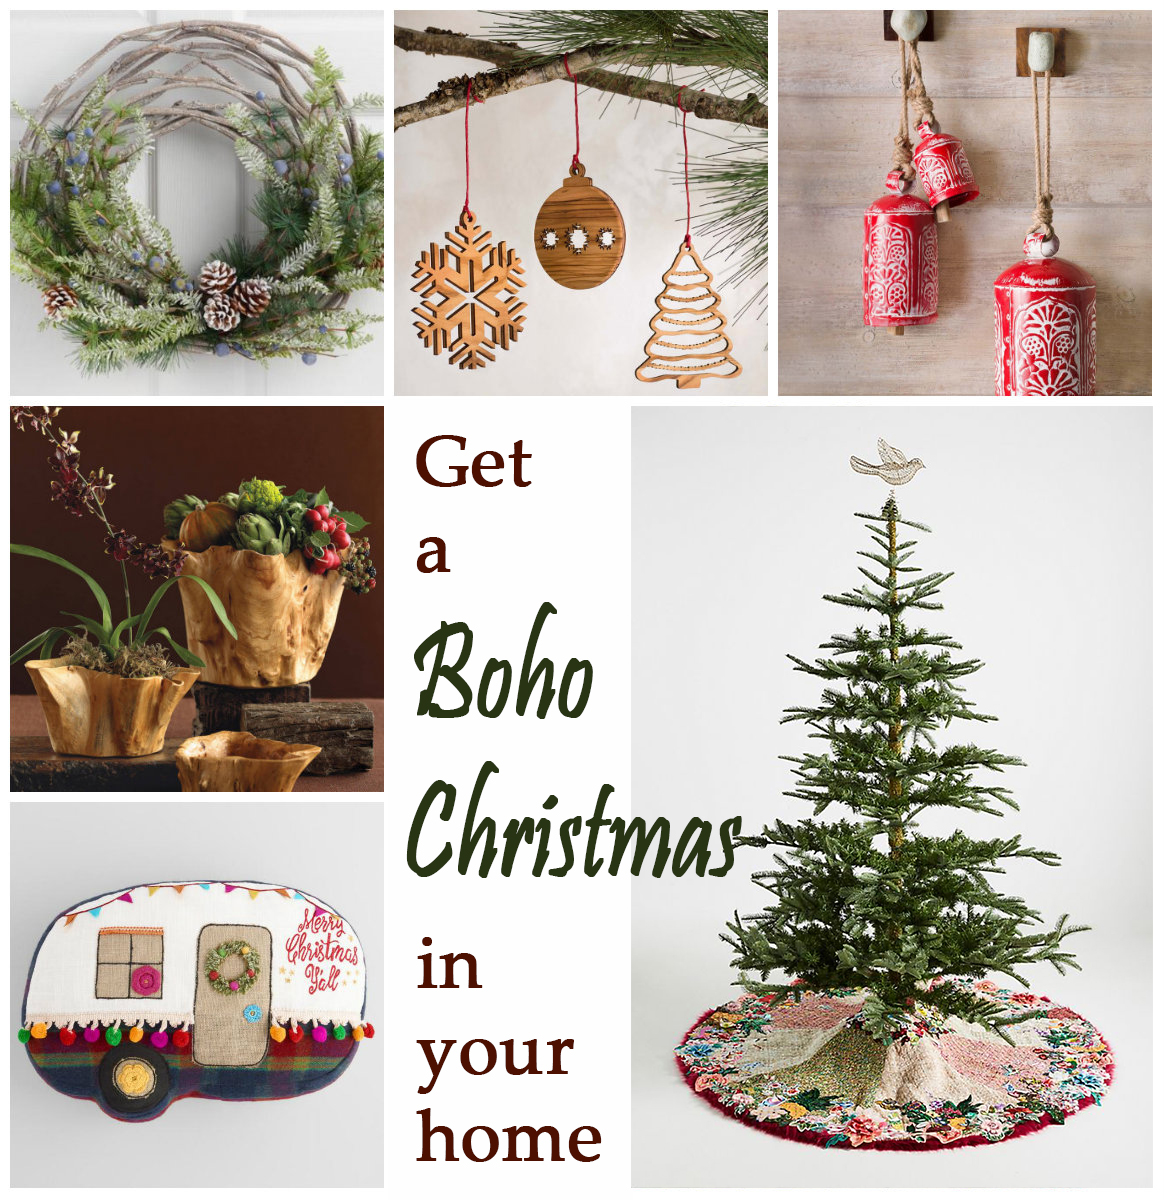 Get a boho Christmas in your home